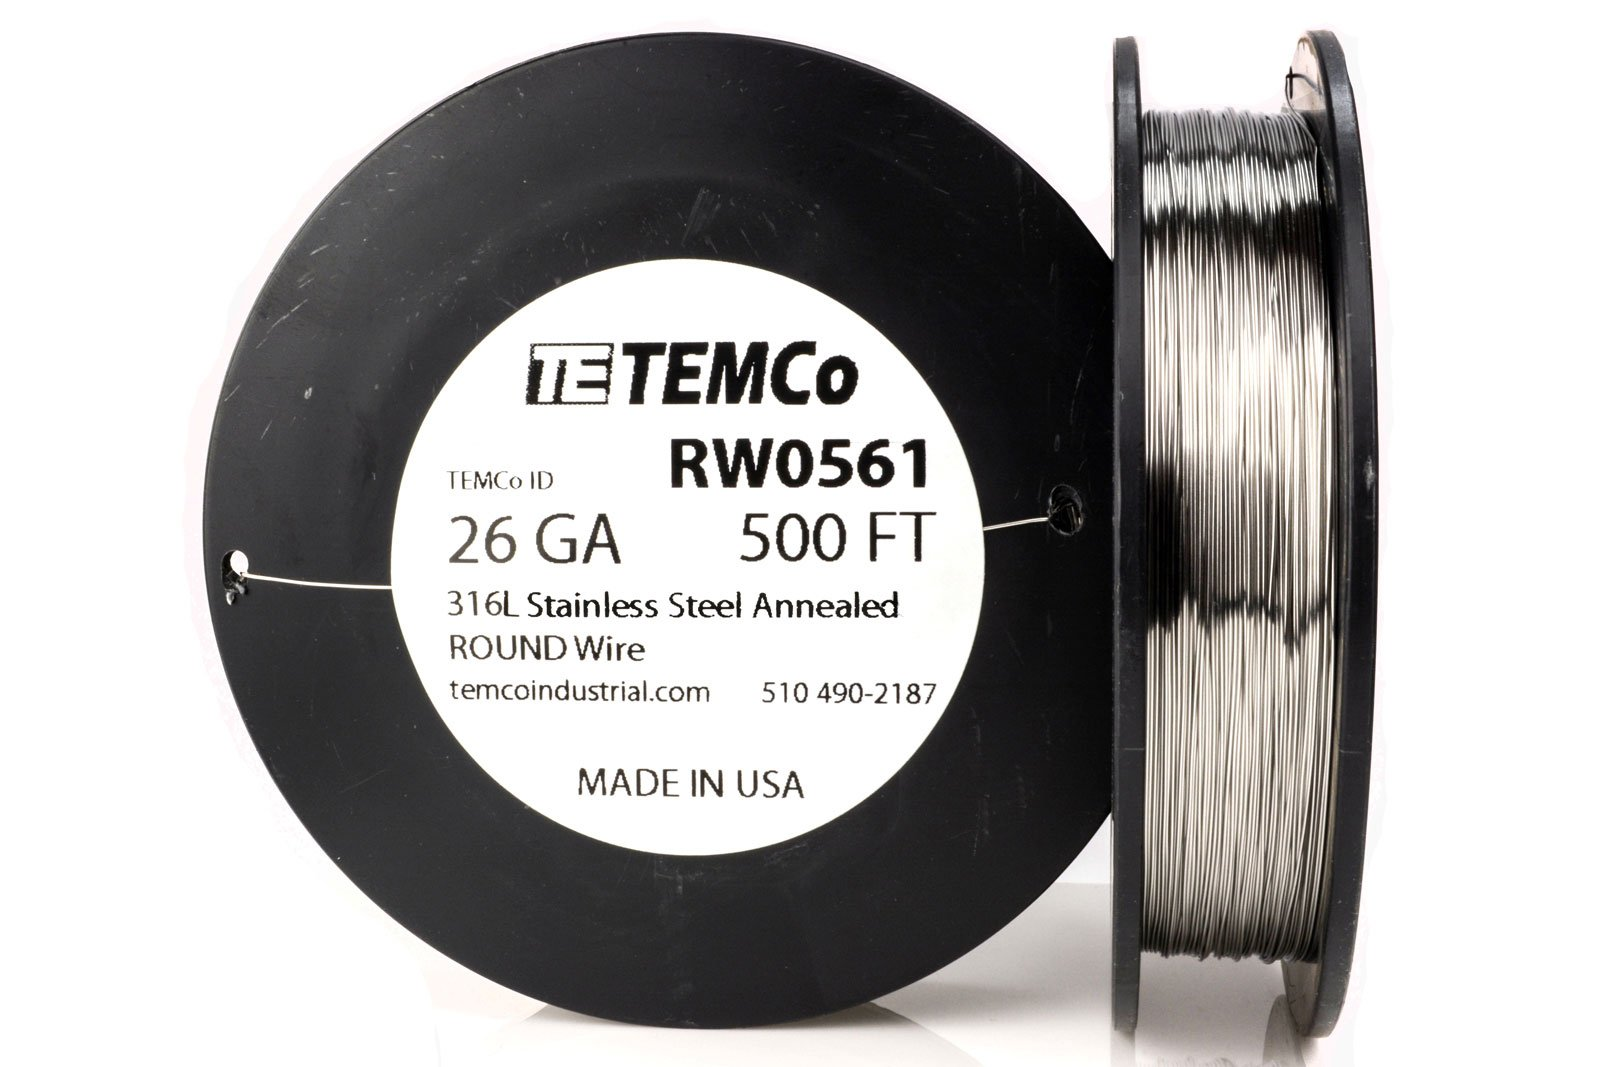 TEMCo Stainless Steel Wire SS 316L - 26 Gauge 500 FT Non-Resistance AWG ga